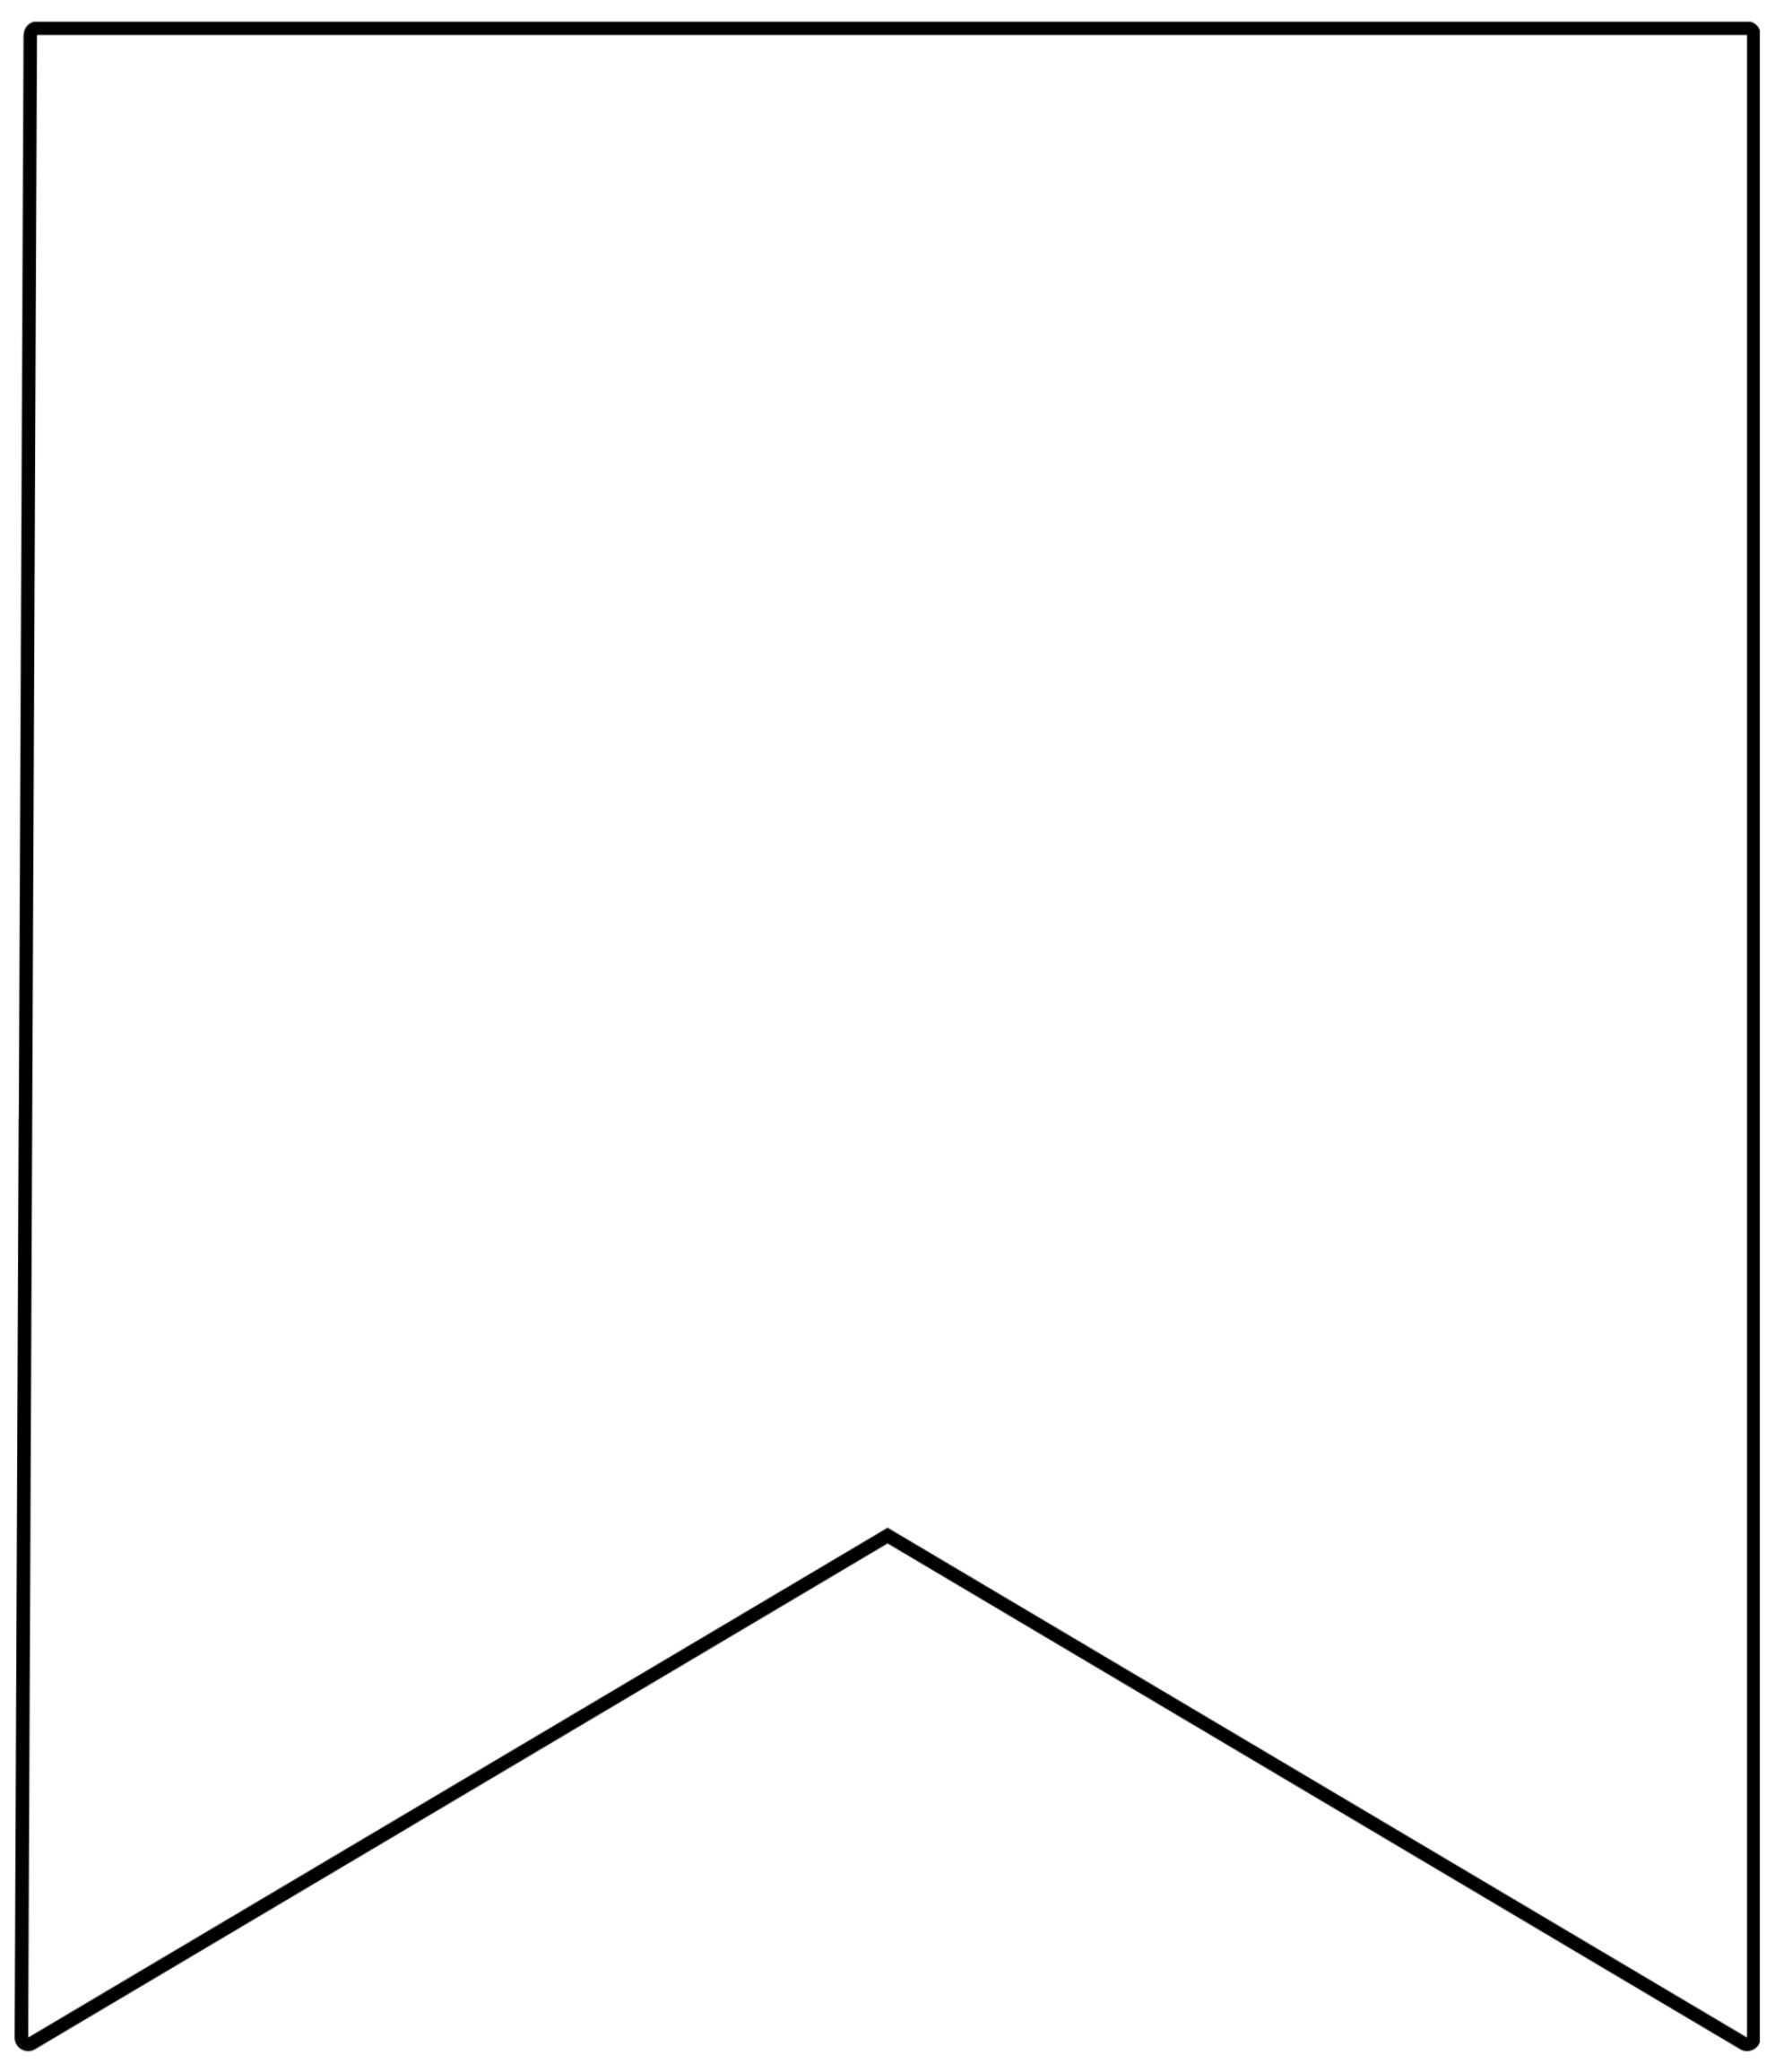 Free Printable Banner Templates {Blank Banners} - Paper Regarding Free Triangle Banner Template